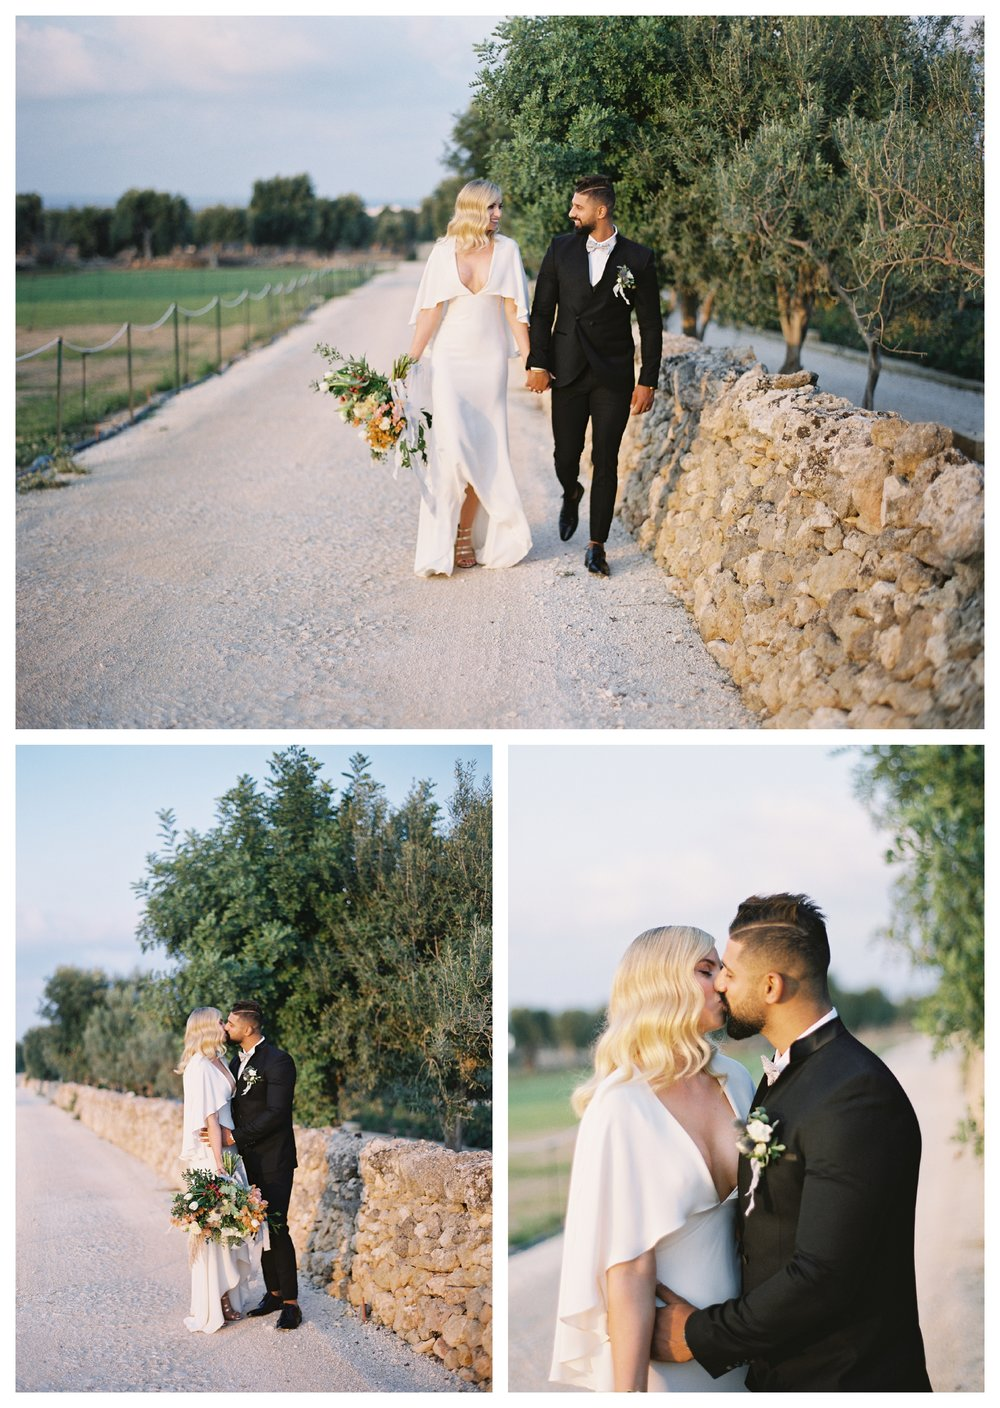 Masseria-torre-coccaro-wedding-photographer-italy-williamsburgphotostudios-016.jpg